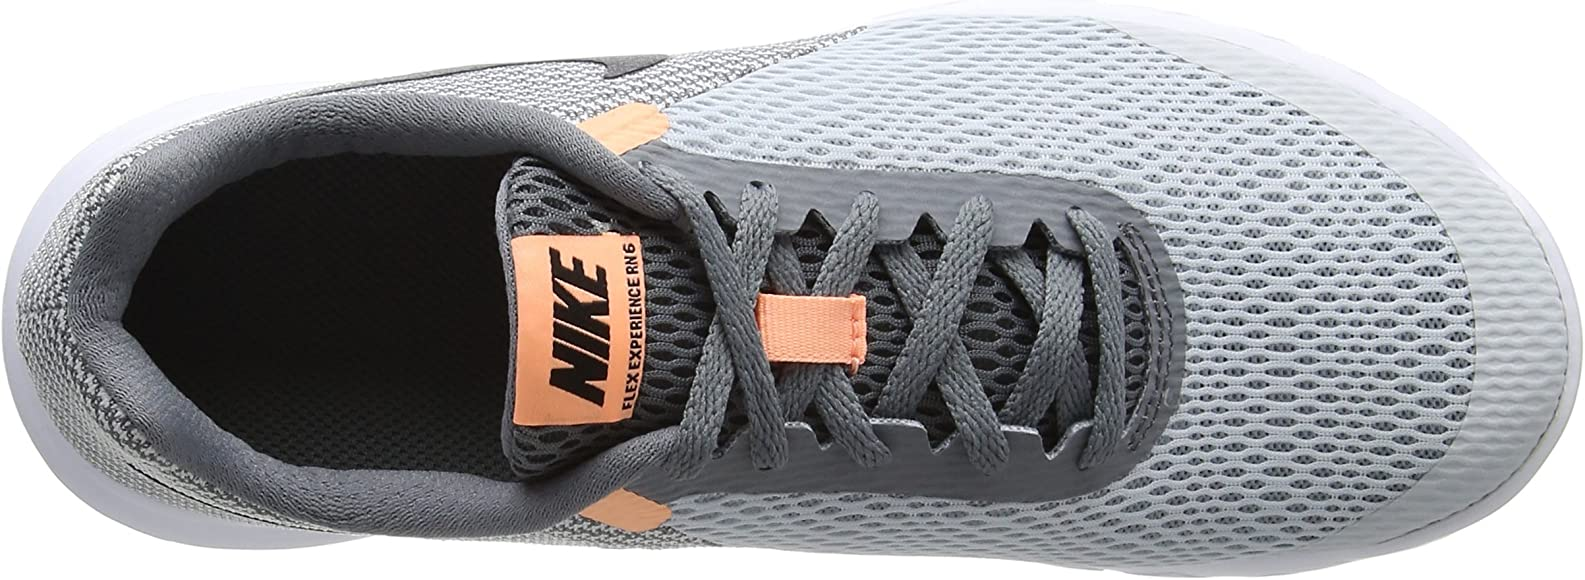 Nike Flex Experience RN 6, Zapatillas de Running para Mujer, Pure Platinum Black Cool Grey Sunset GLO, 36 EU: Amazon.es: Zapatos y complementos